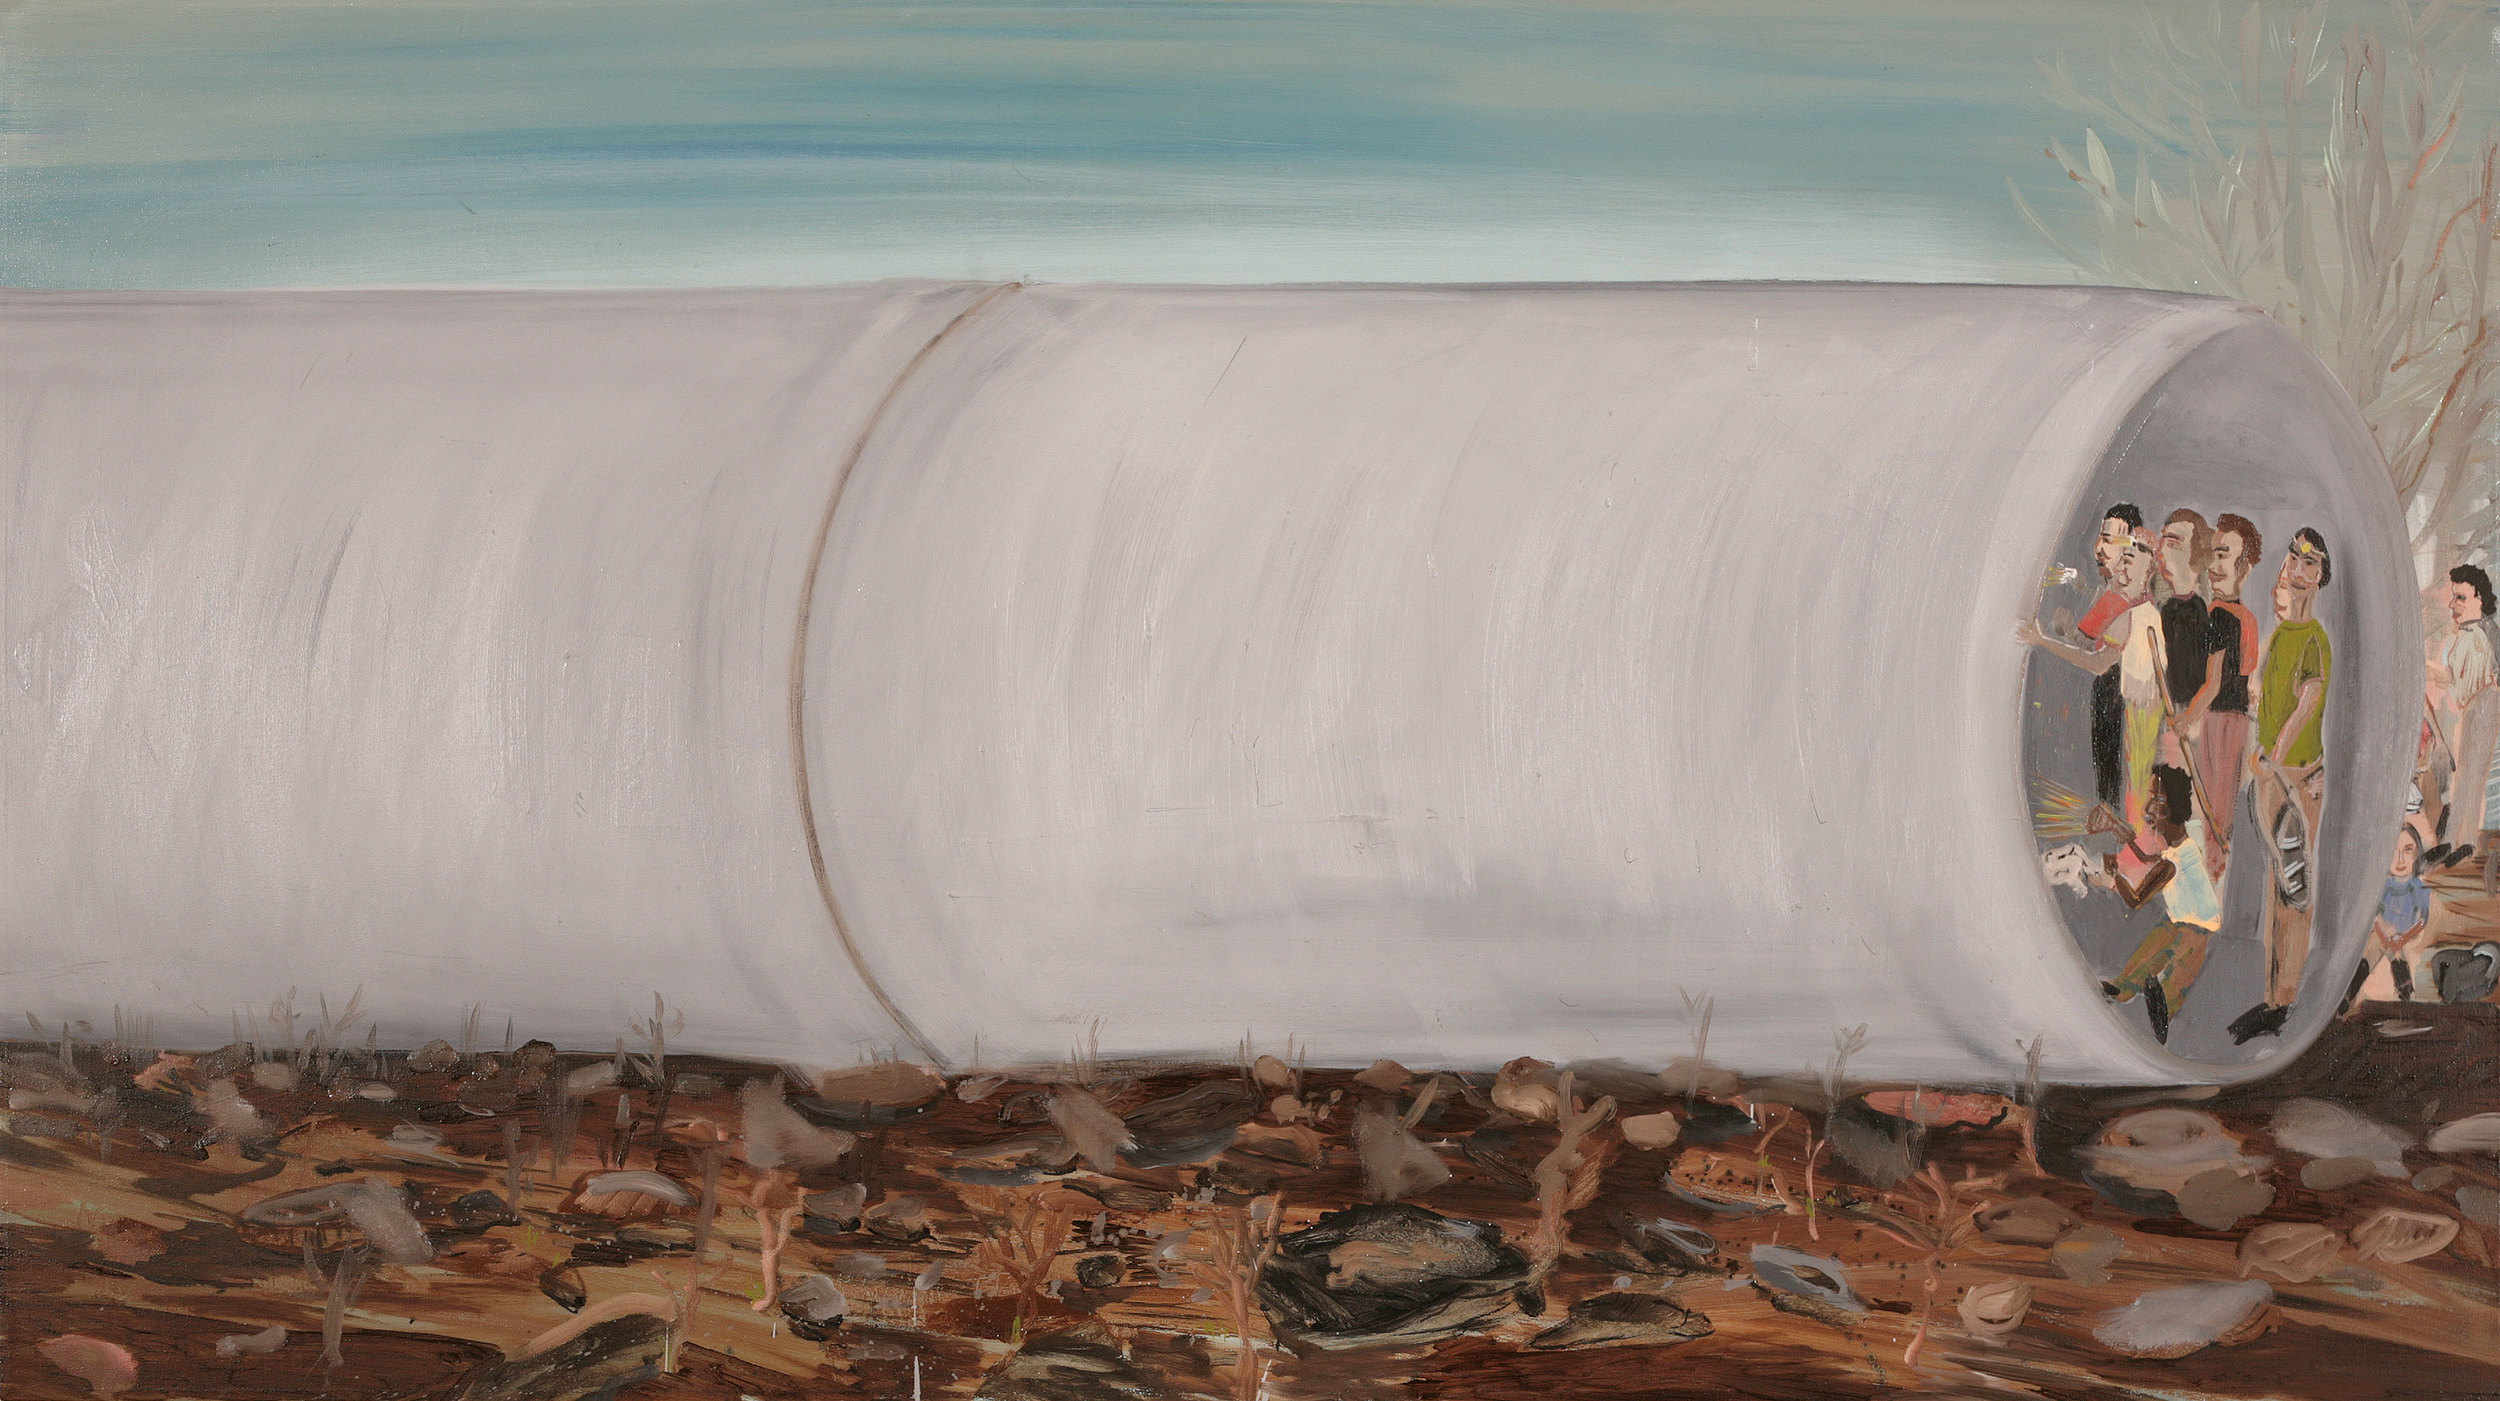 Pipe, 2007    Oil on canvas, 110x196 cm